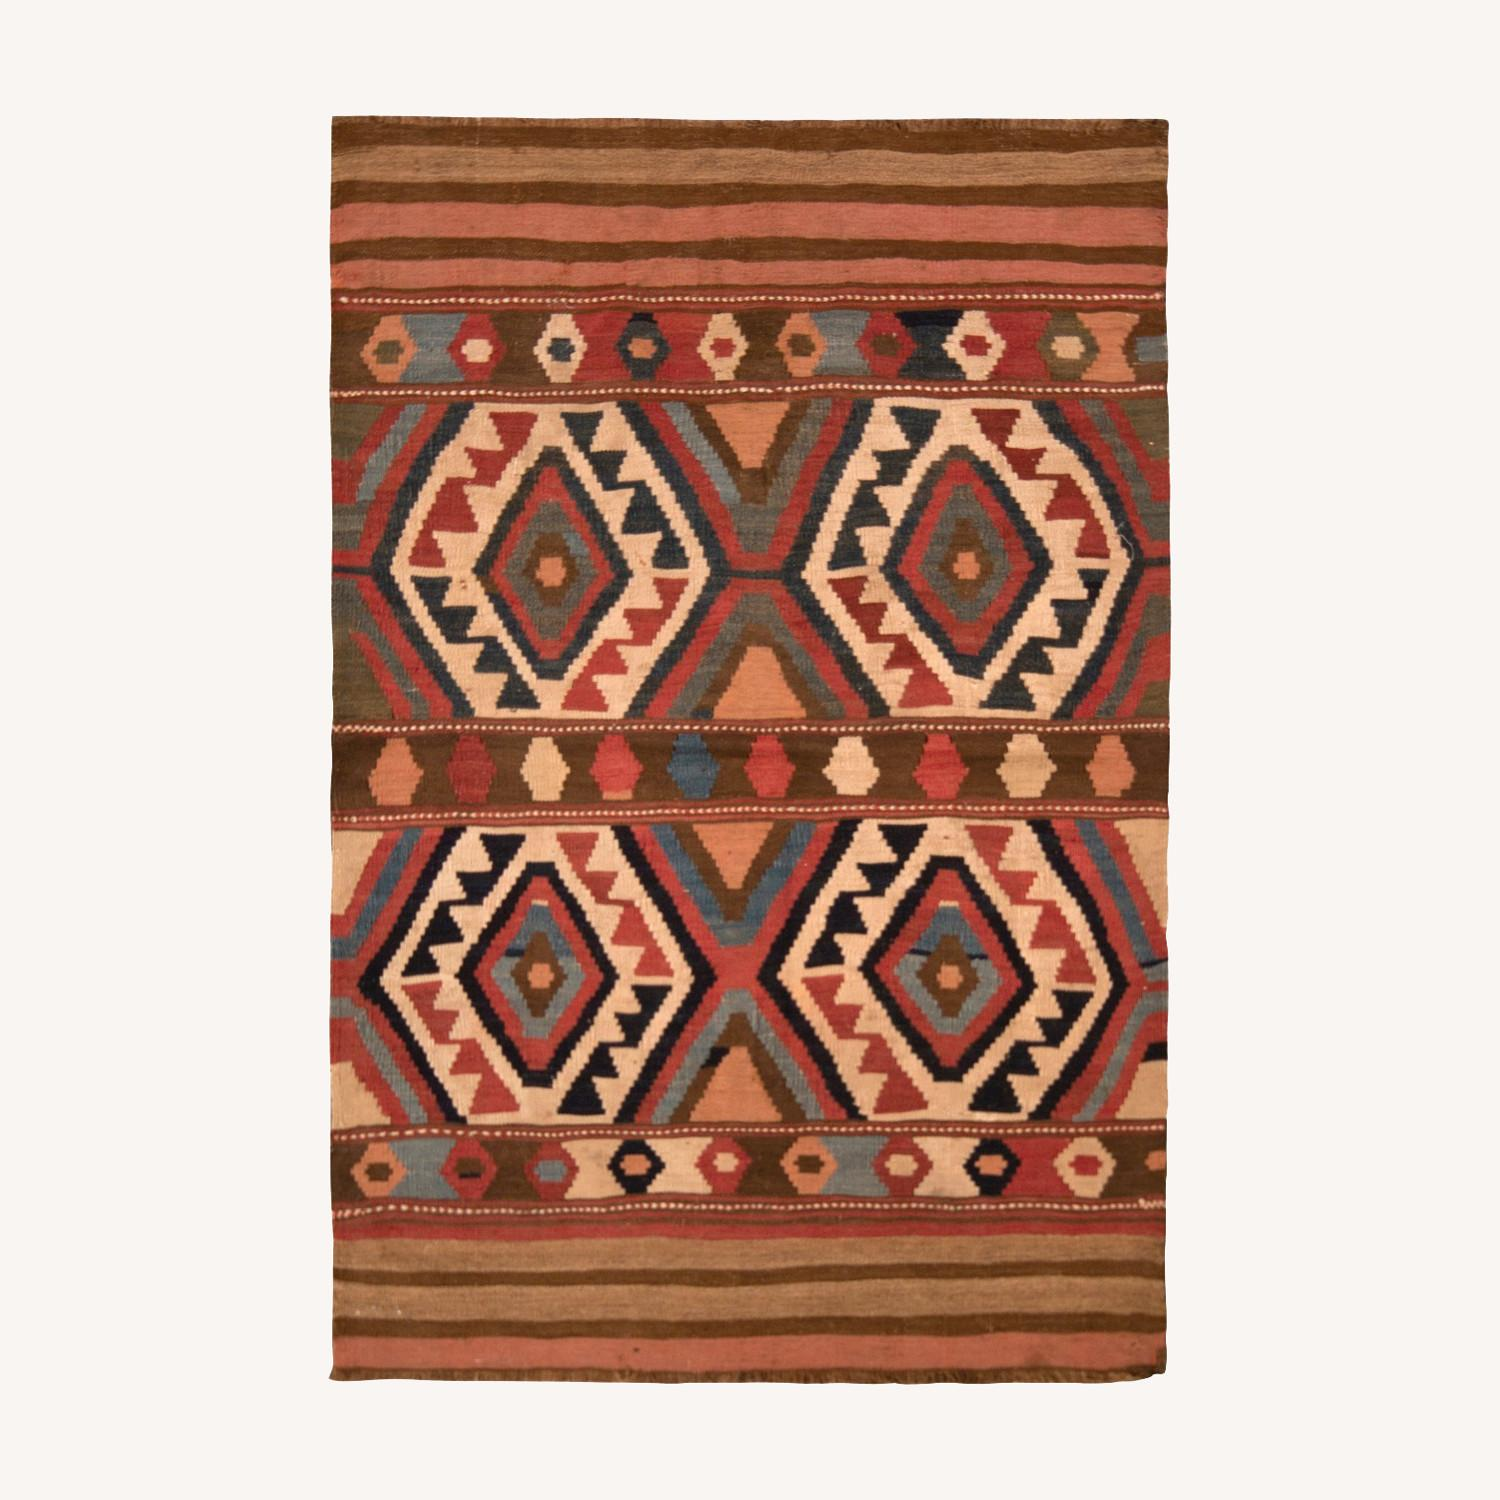 Antique Shahsavan Rug Transitional Tribal Pattern - image-0